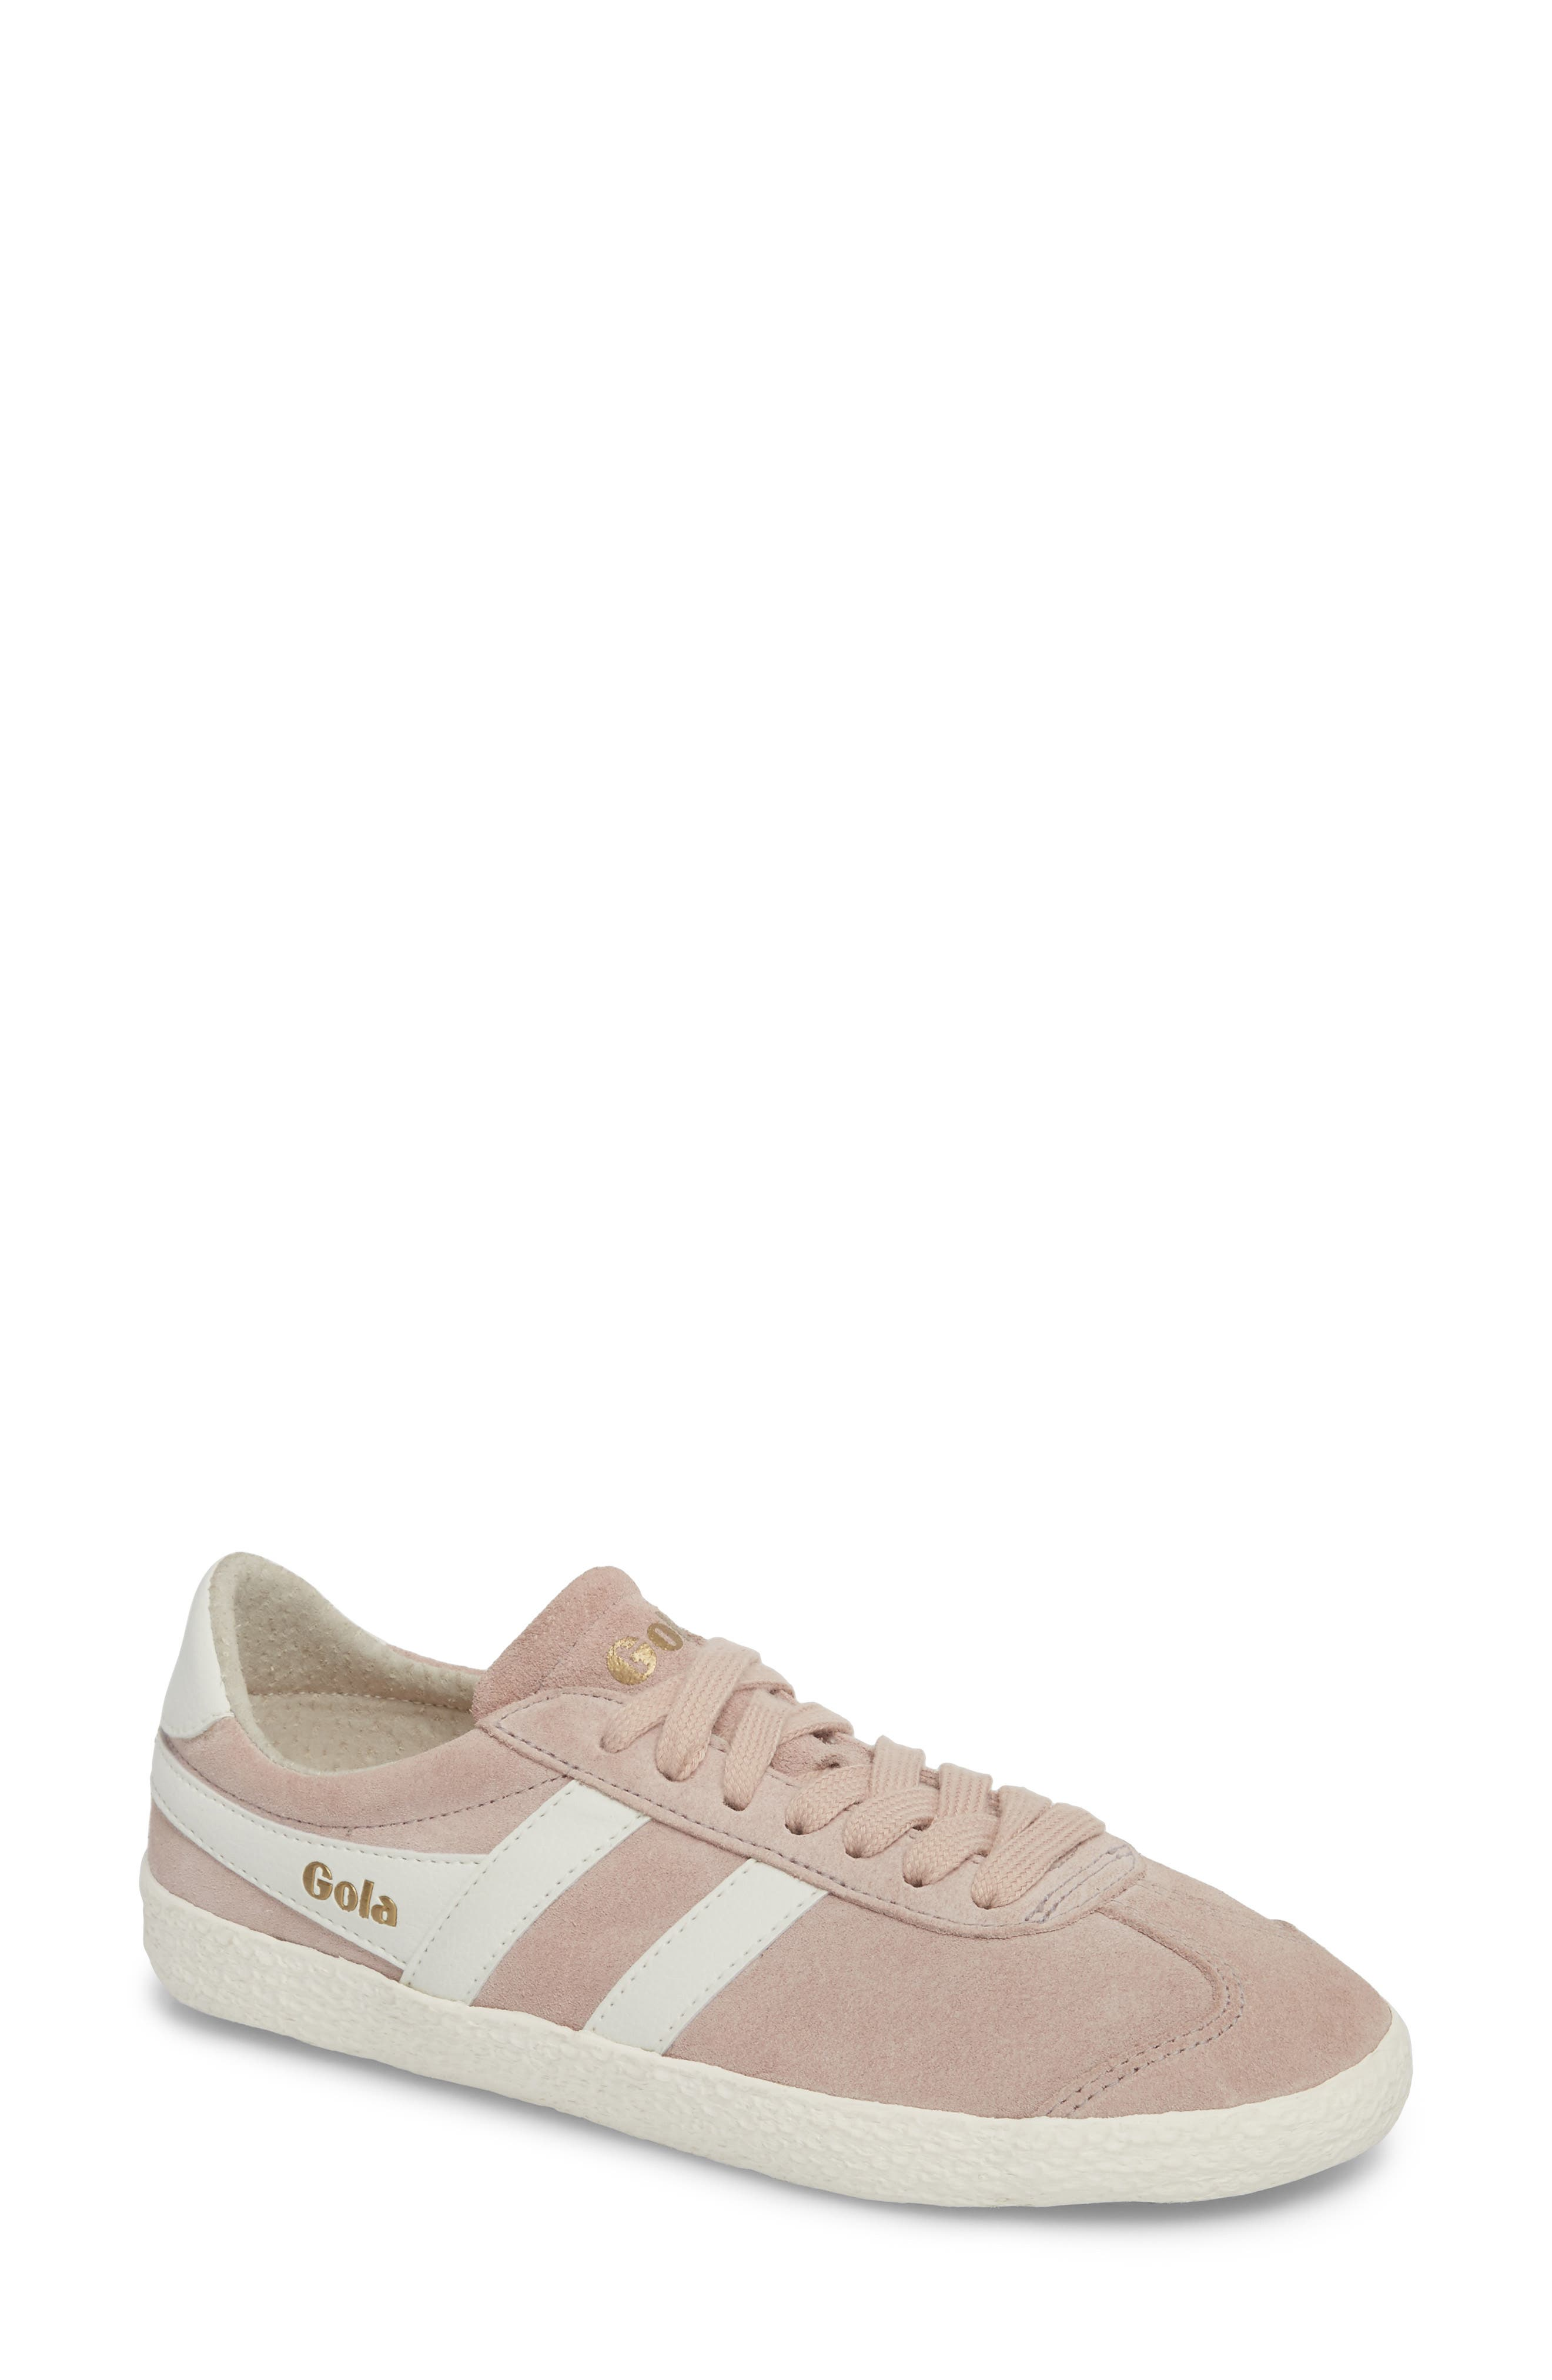 Specialist Low Top Sneaker,                             Main thumbnail 1, color,                             BLOSSOM/ OFF WHITE